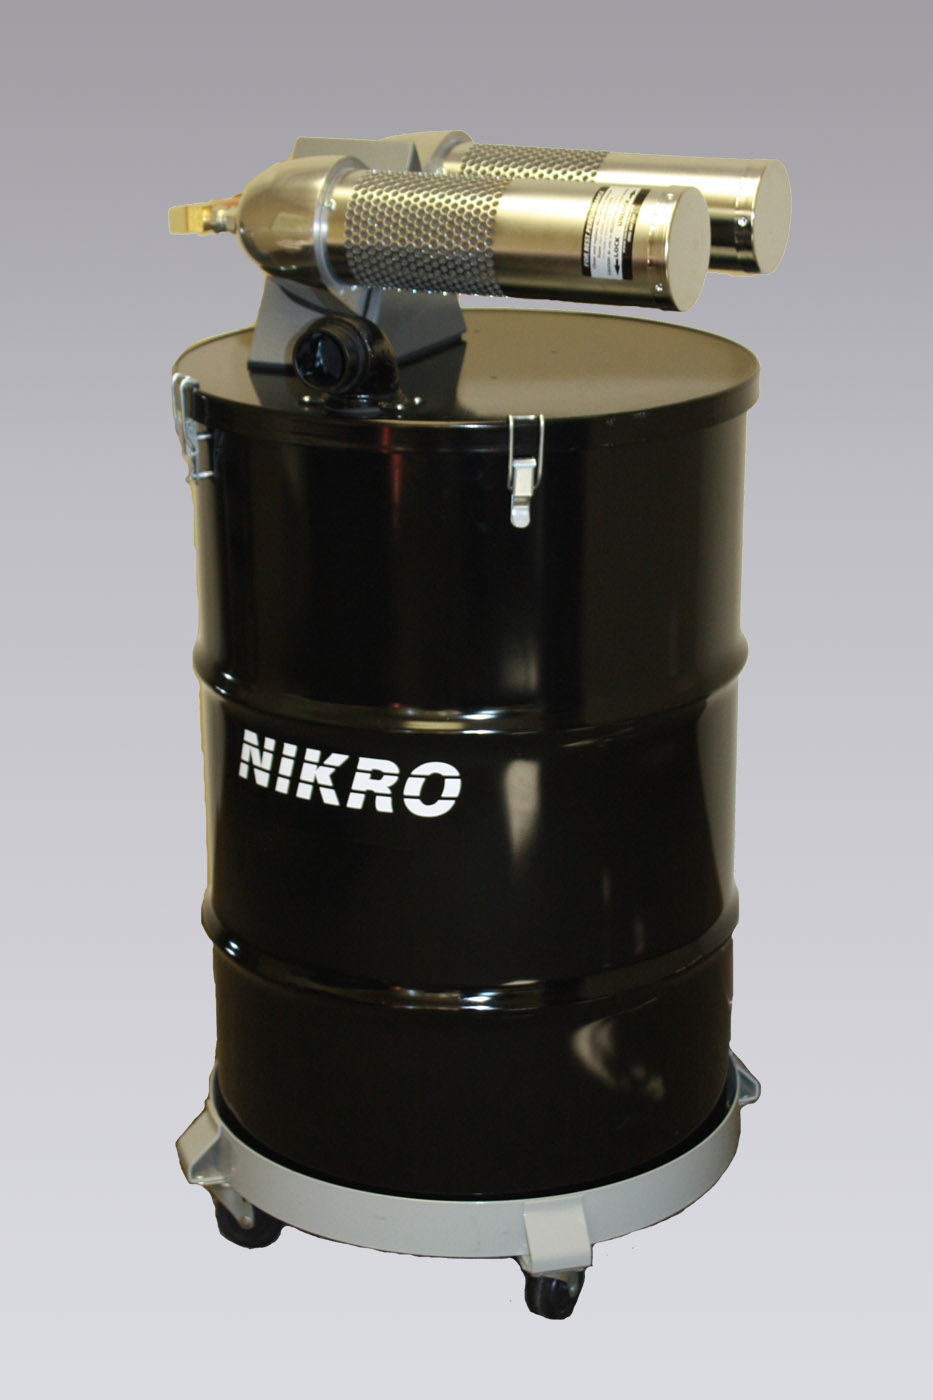 NIKRO AWP55TWN - Painted Steel Pneumatic Vacuums/ Compressed Air Powered Vacuums - Pneumatic Vacuums/ Compressed Air Powered Vacuums 